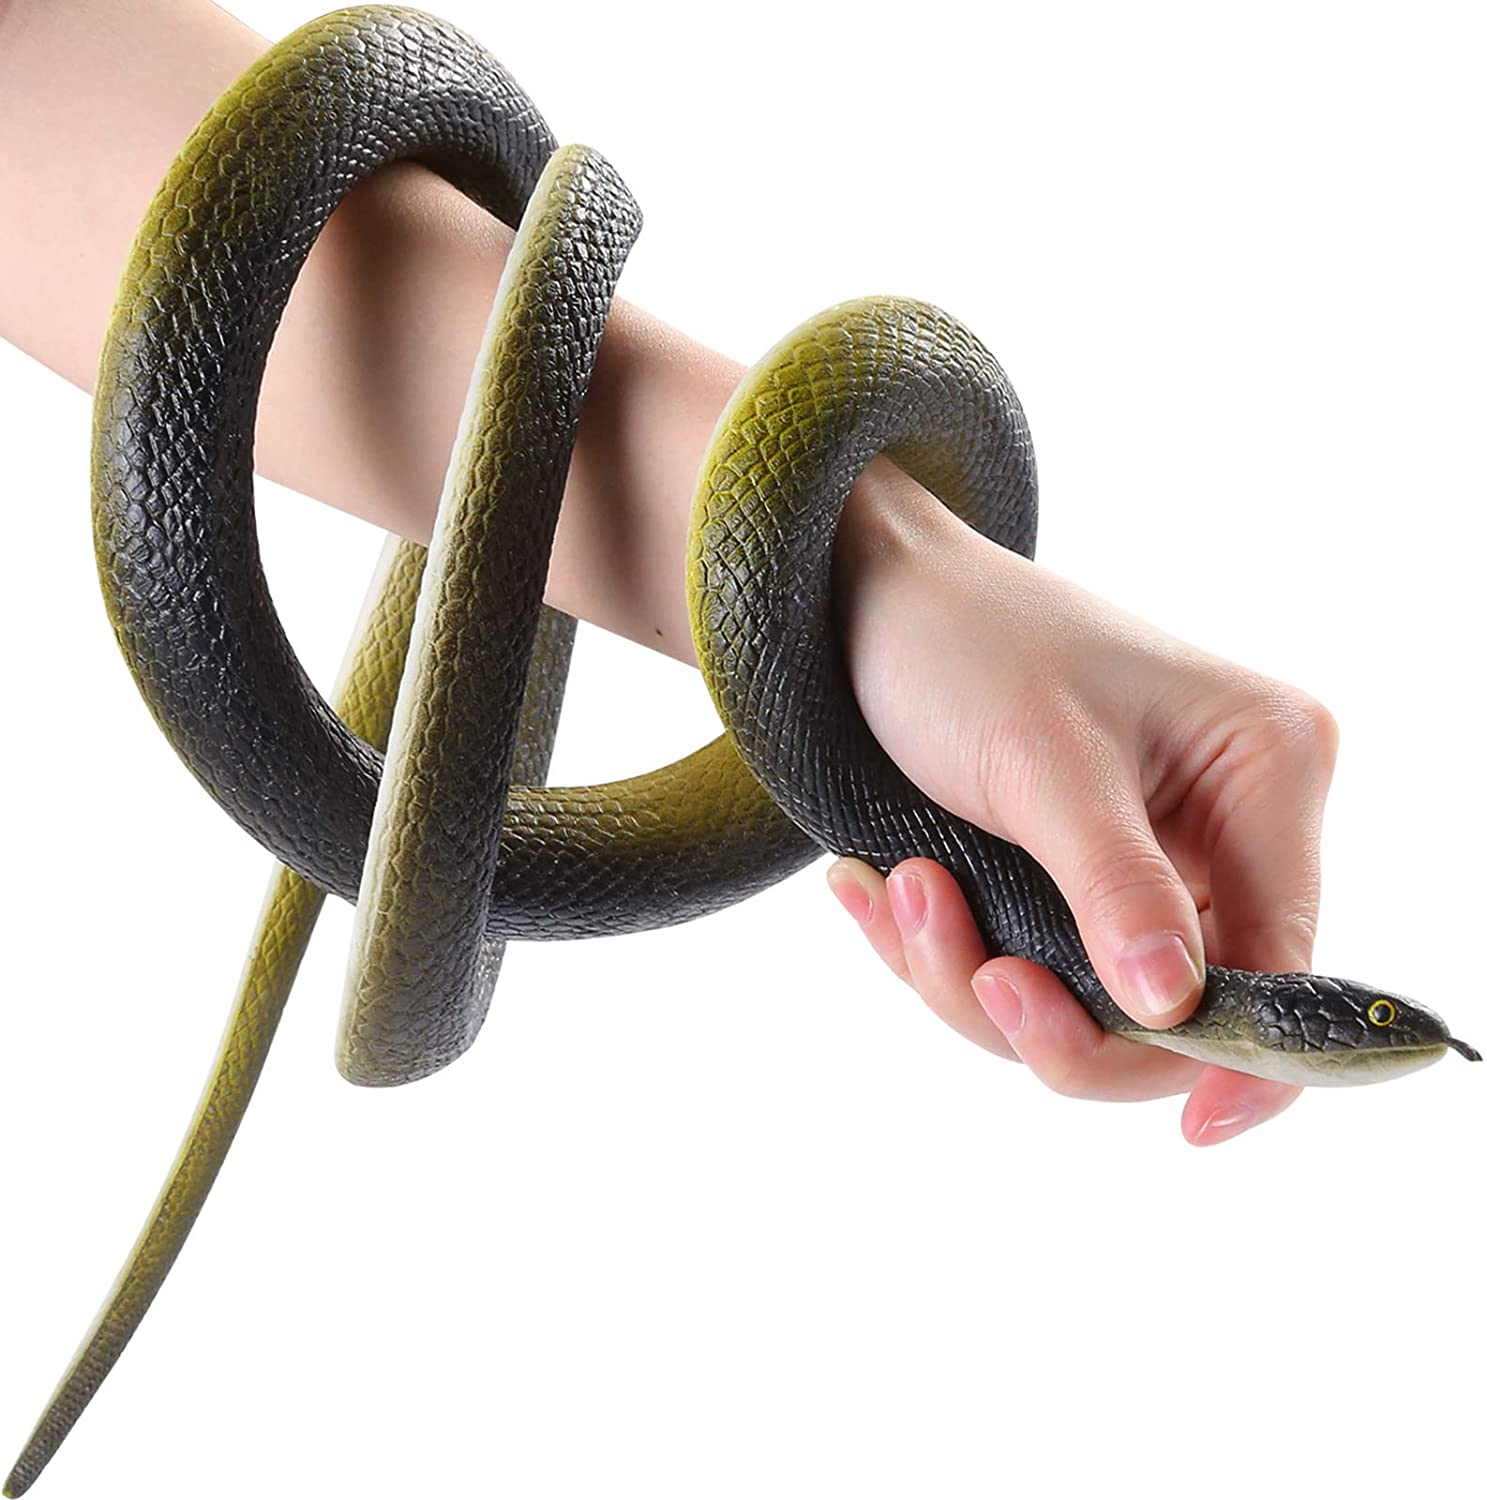 """Wirrabilla 53"""" Large Rubber Snake Super Realistic, Fake Snake Looks So Real, Snake Toy Thick and Durable, Great for Pranks, Halloween Party Decoration, Garden Props - Deter Squirrels, Bunnies, Birds"""